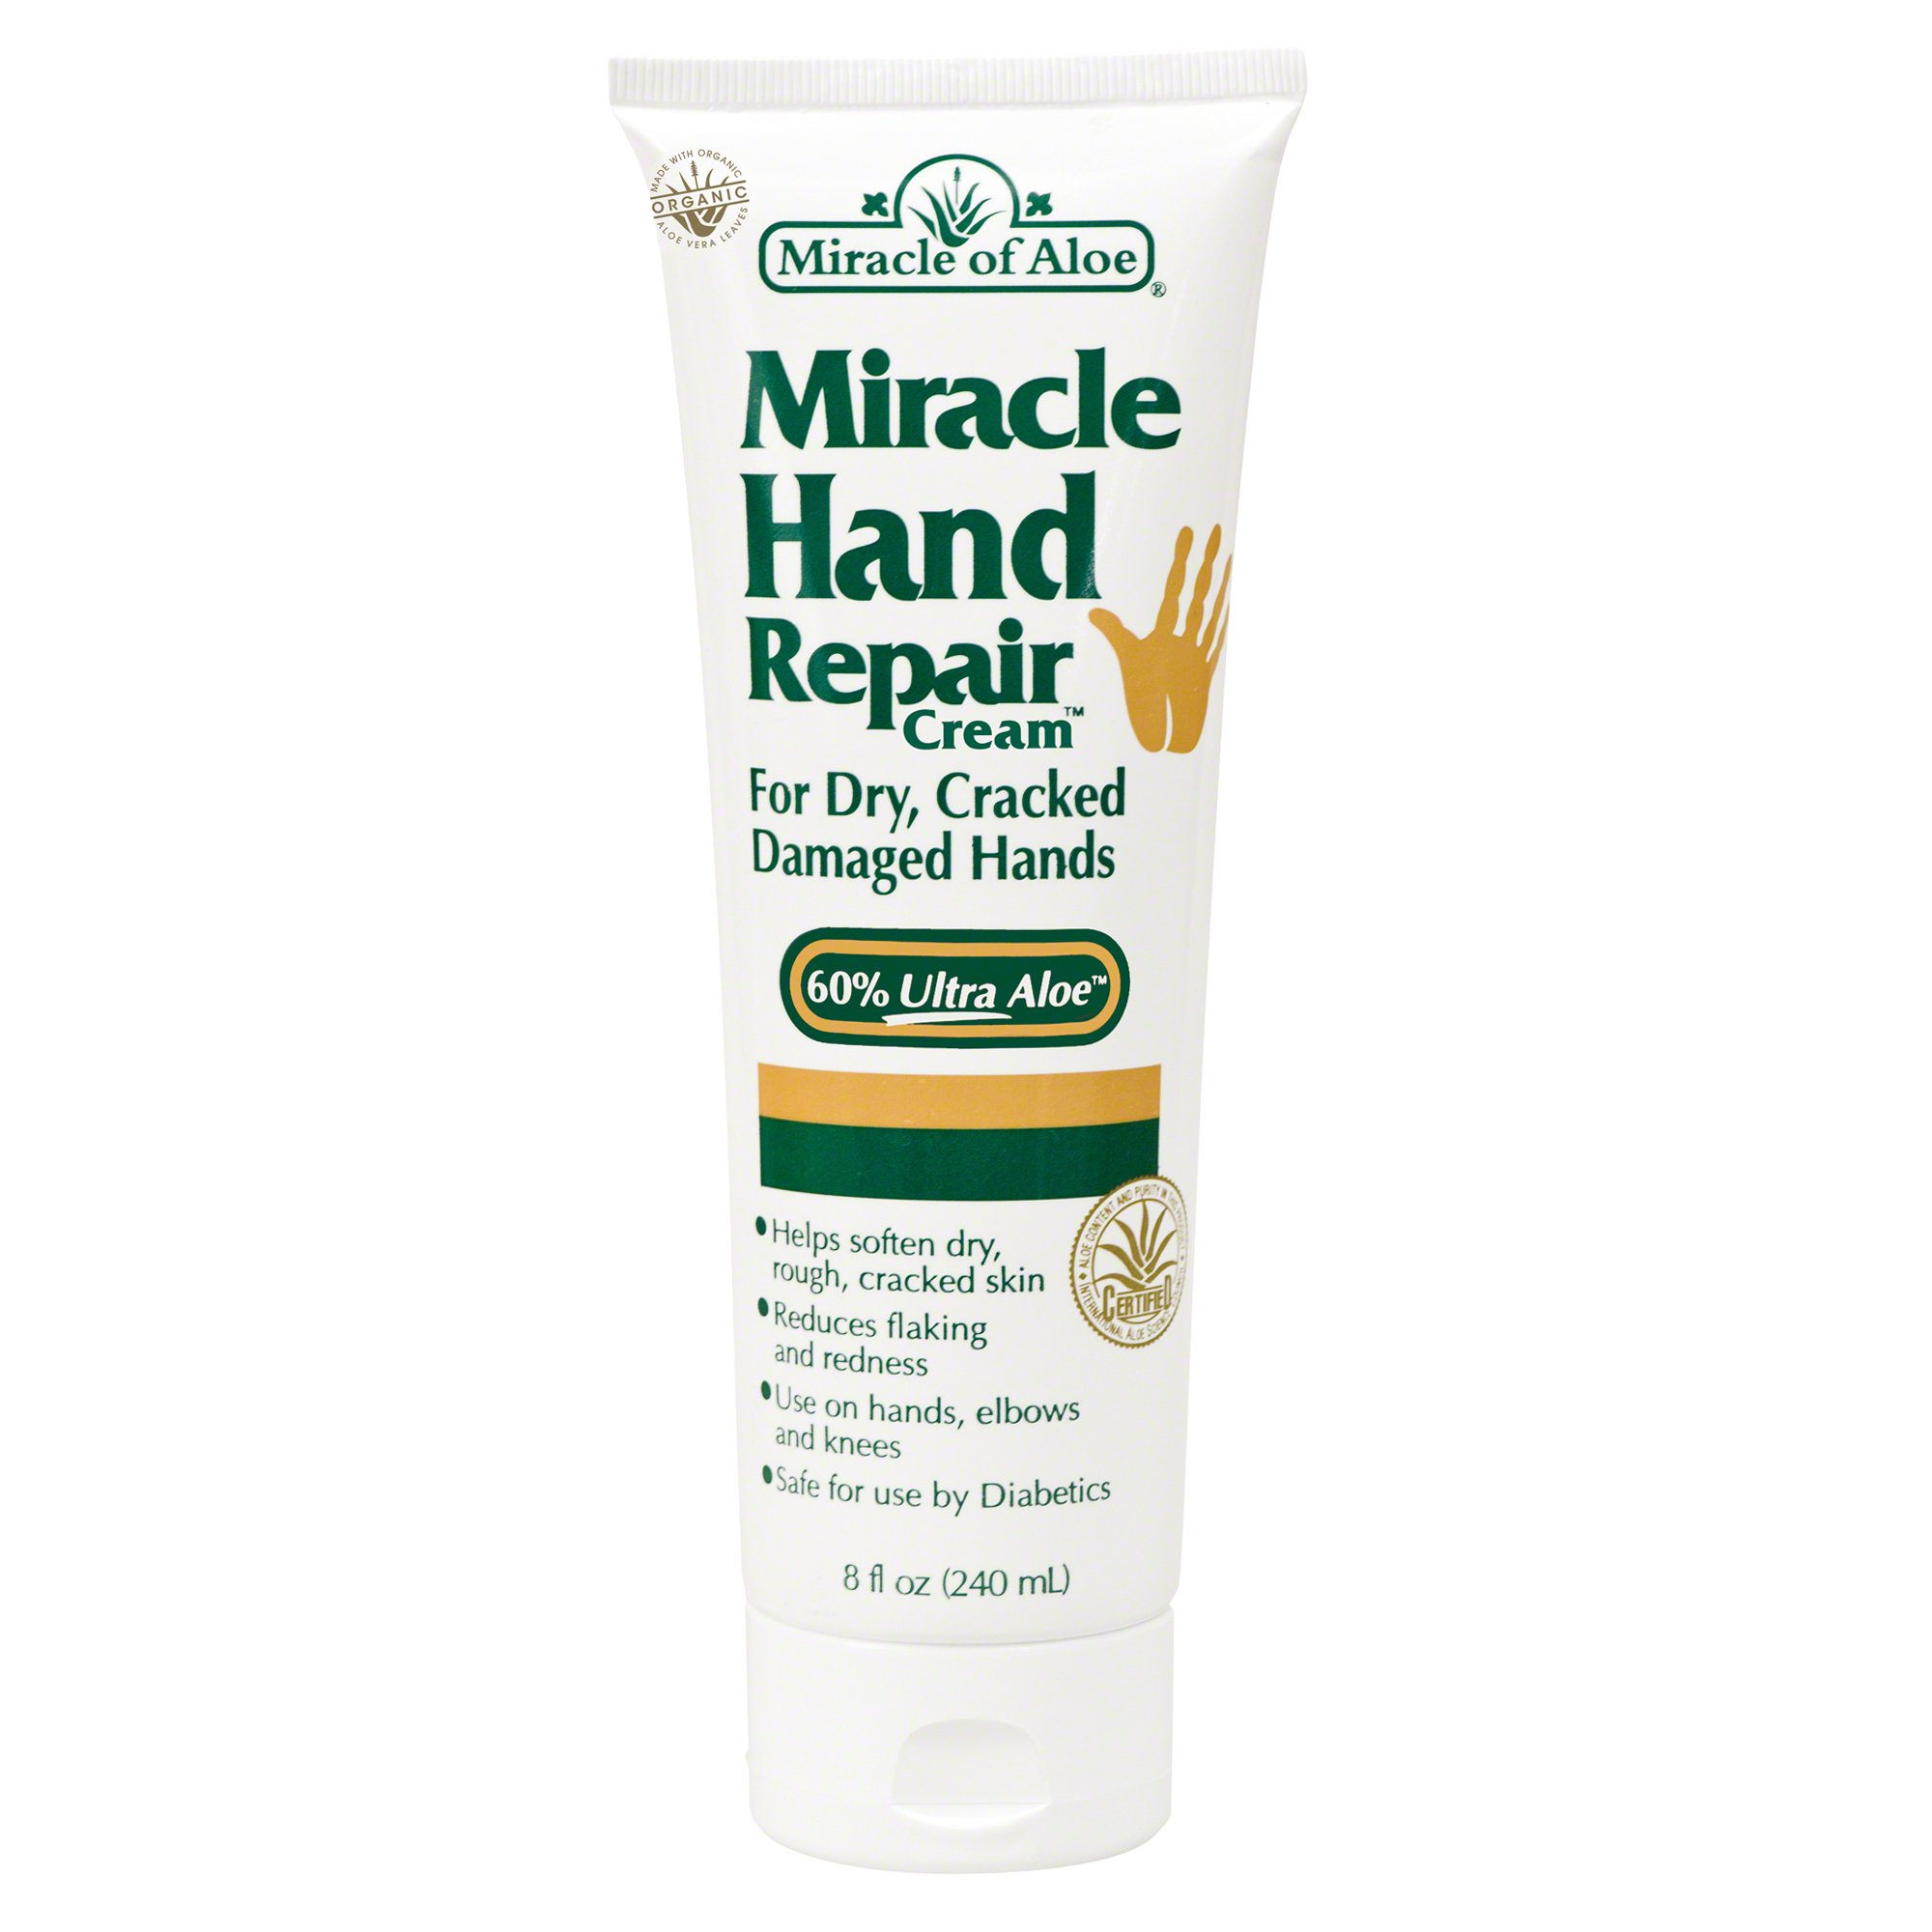 Miracle Hand Repair Cream 8 ounce tube with 60% UltraAloe by Miracle of Aloe